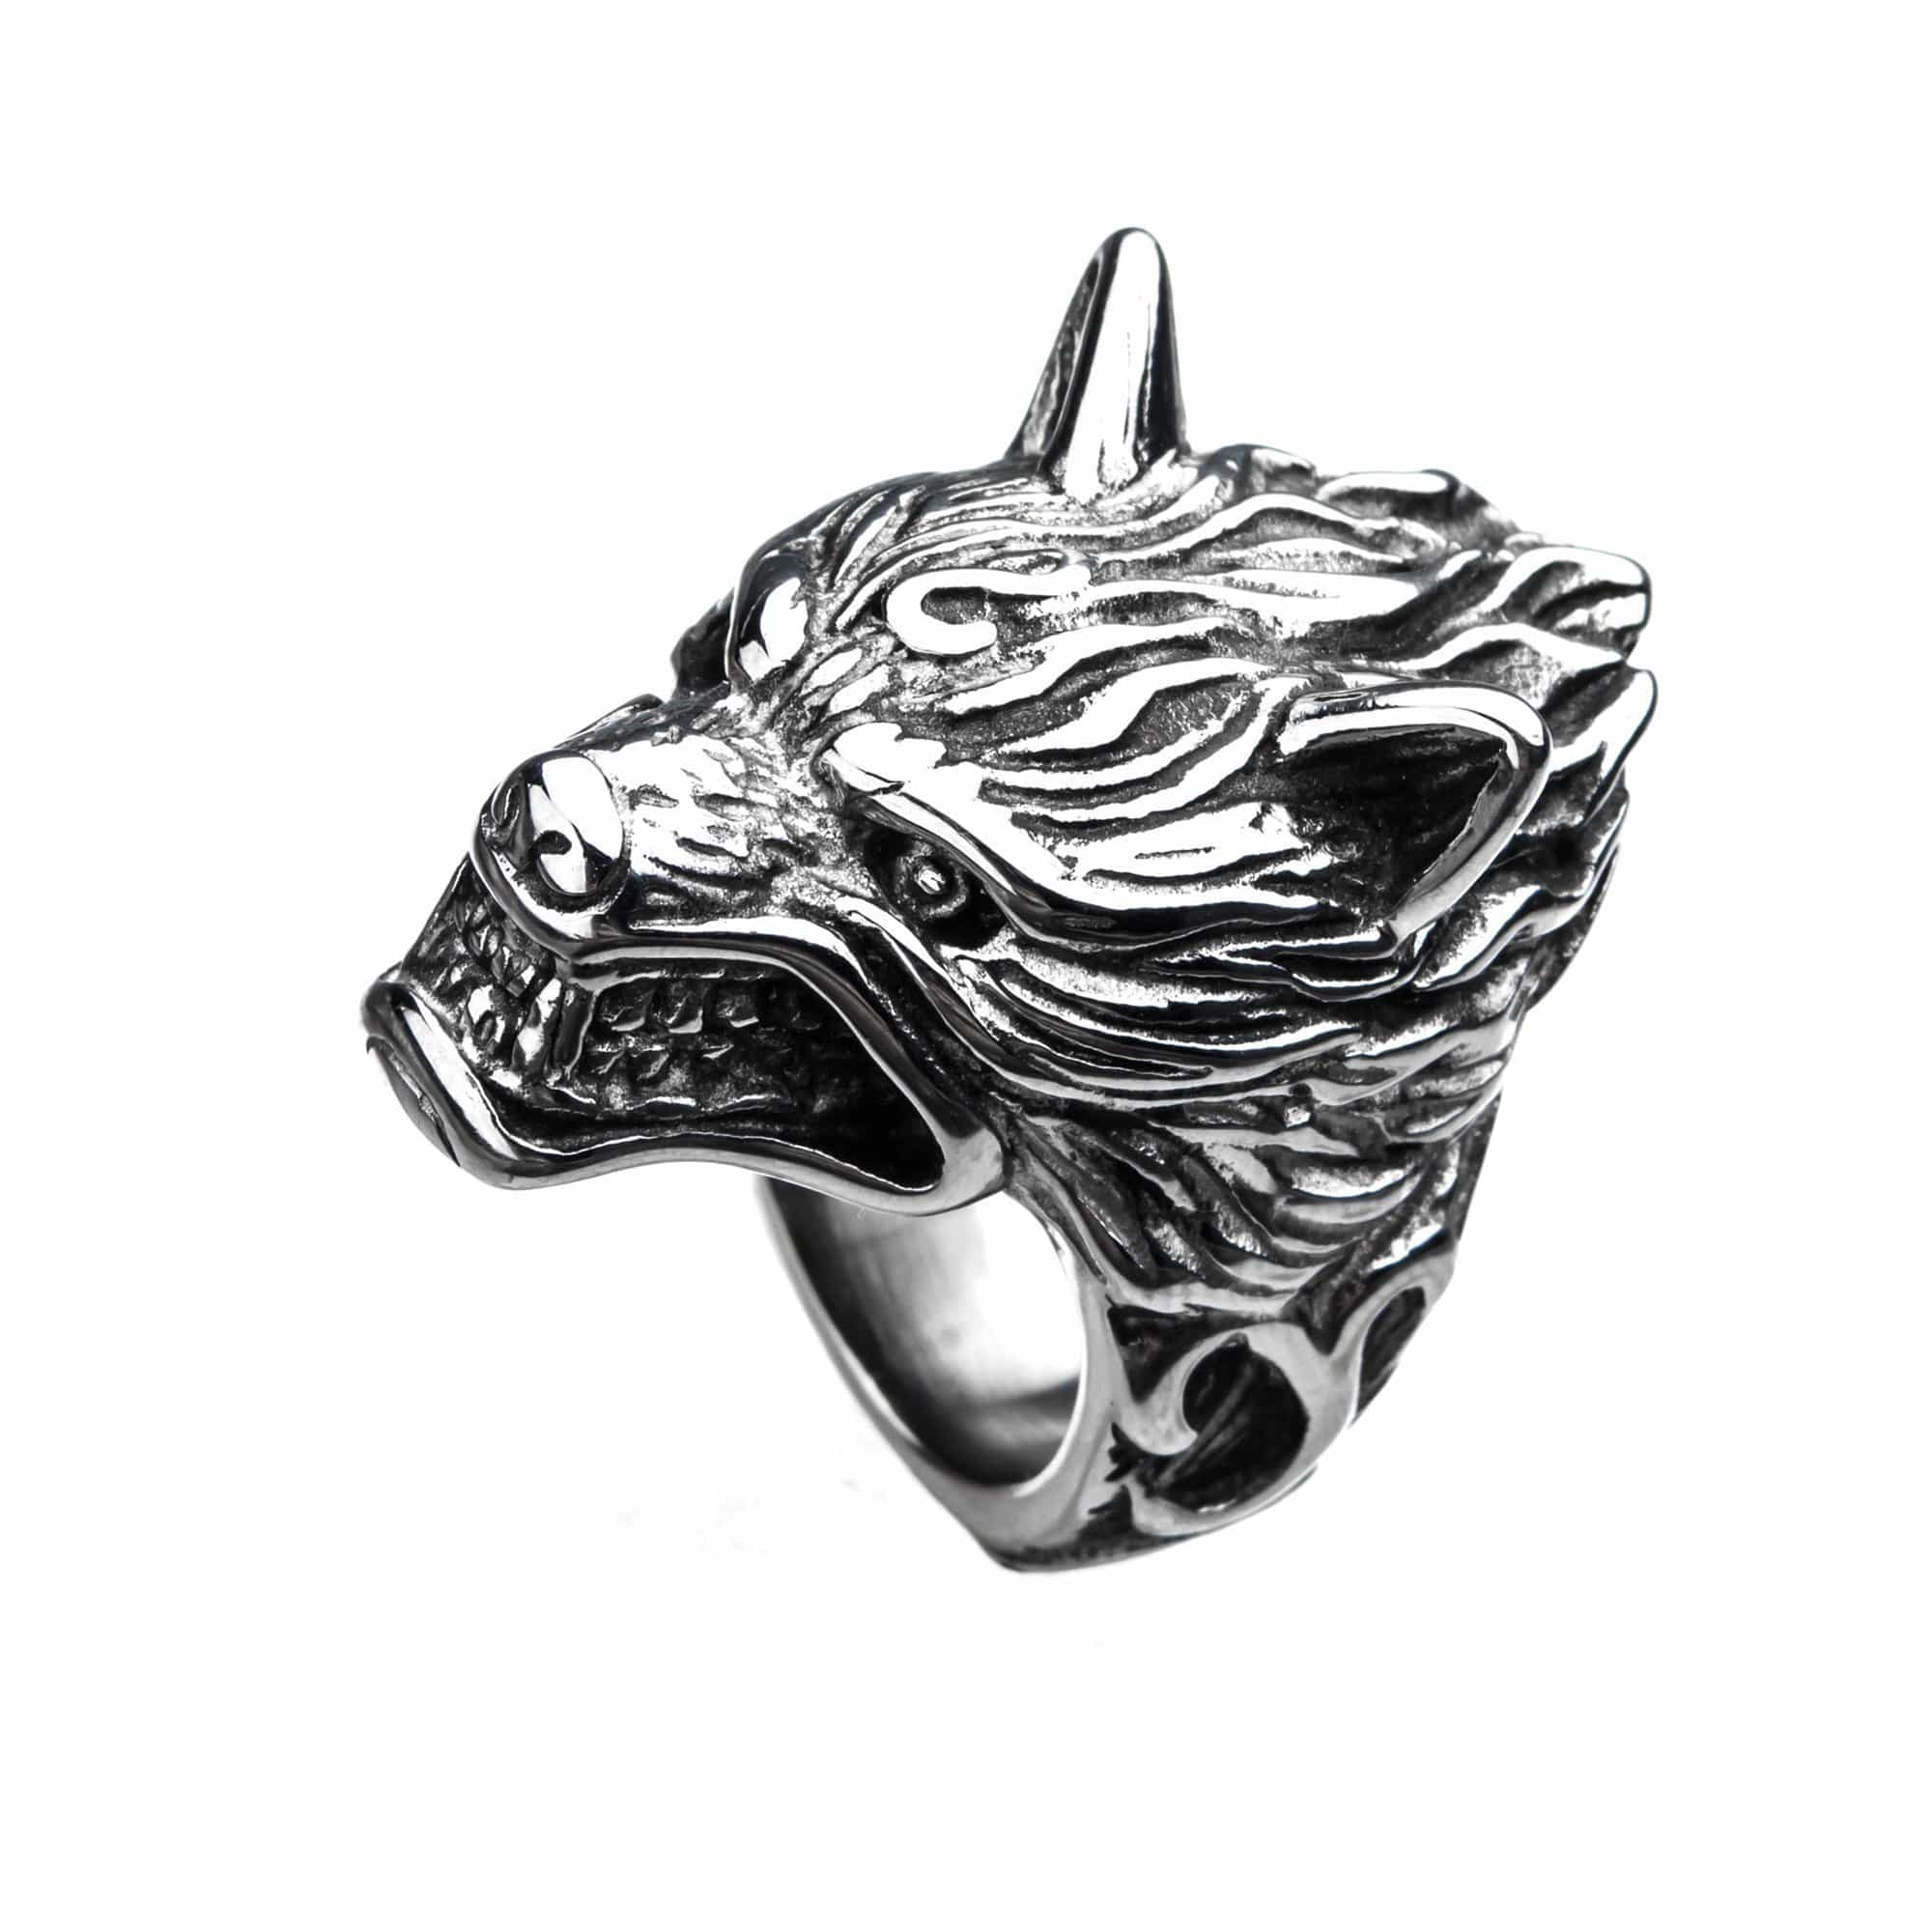 STL 3D WOLF RING SIZE 10